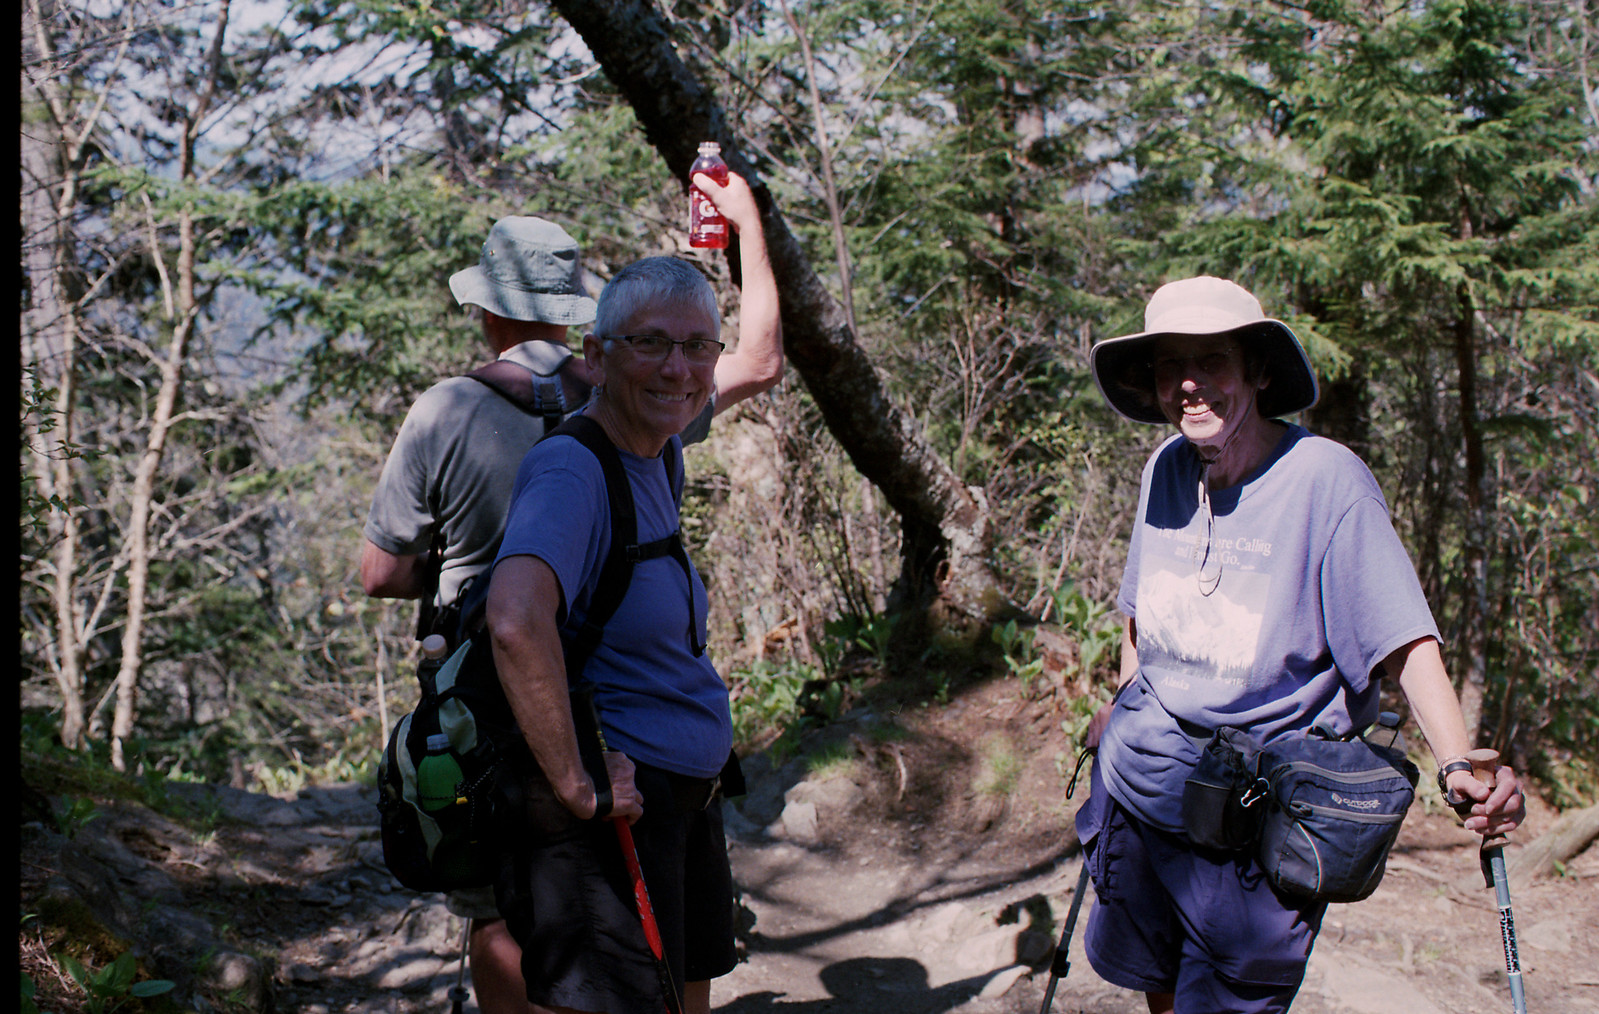 Hikers on Appalachian Trail